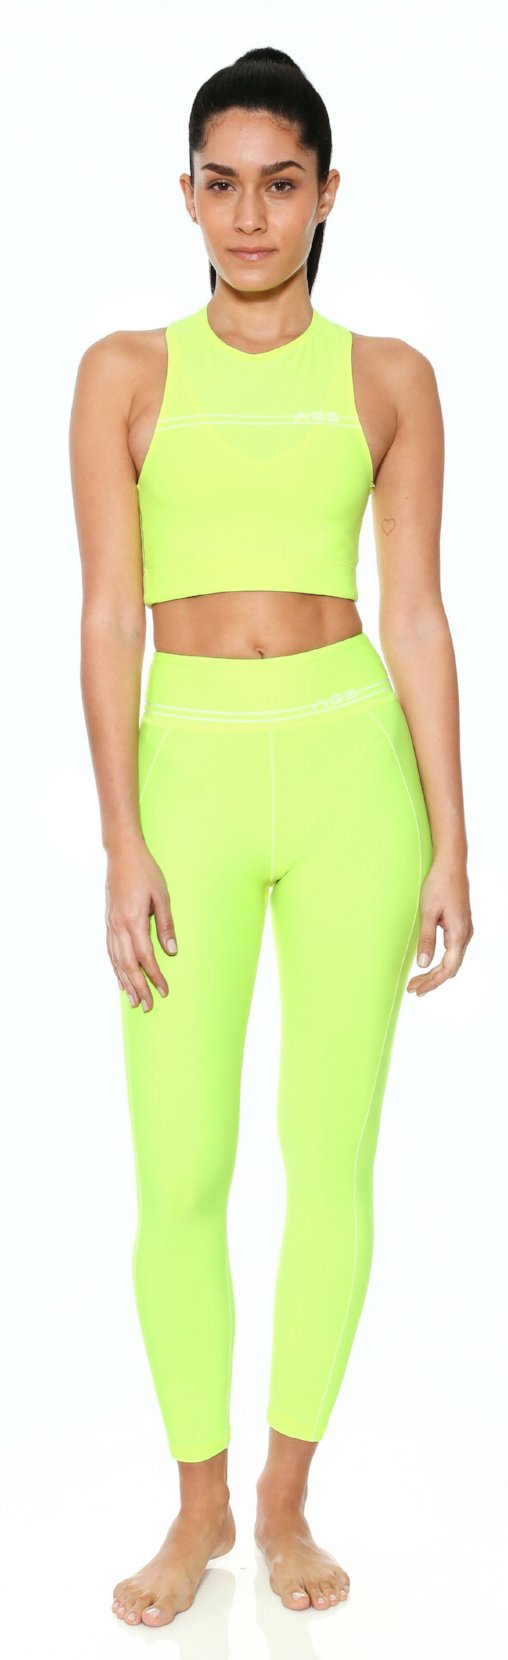 neon bottom legging adam selman workout work out clothes